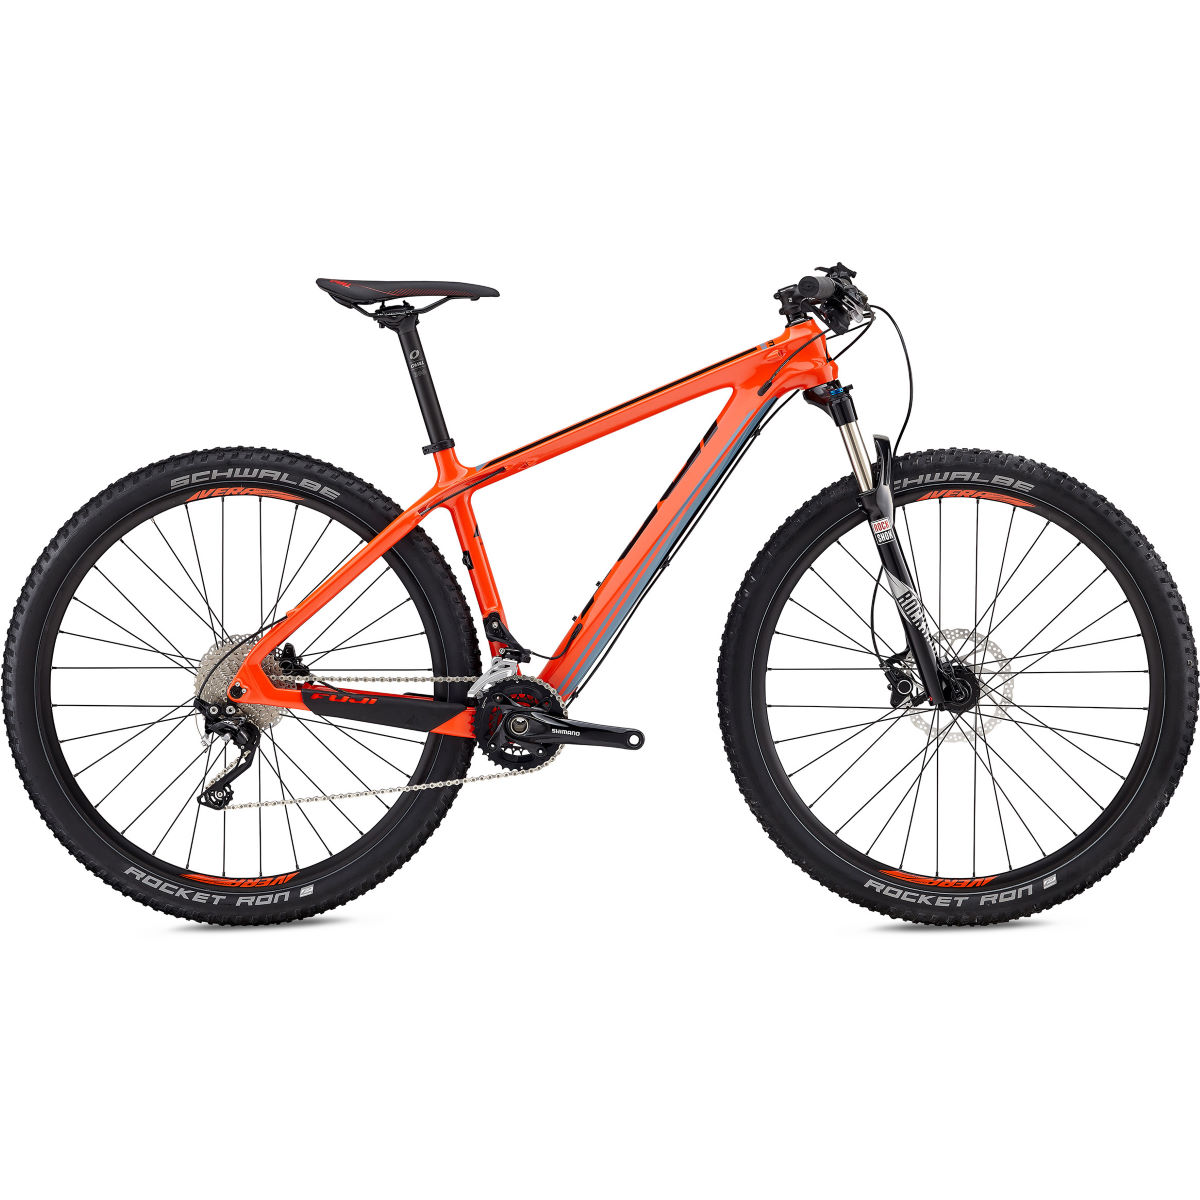 VTT Fuji SLM 29 2.7 (2018) - 17.5'' Stock Bike Orange